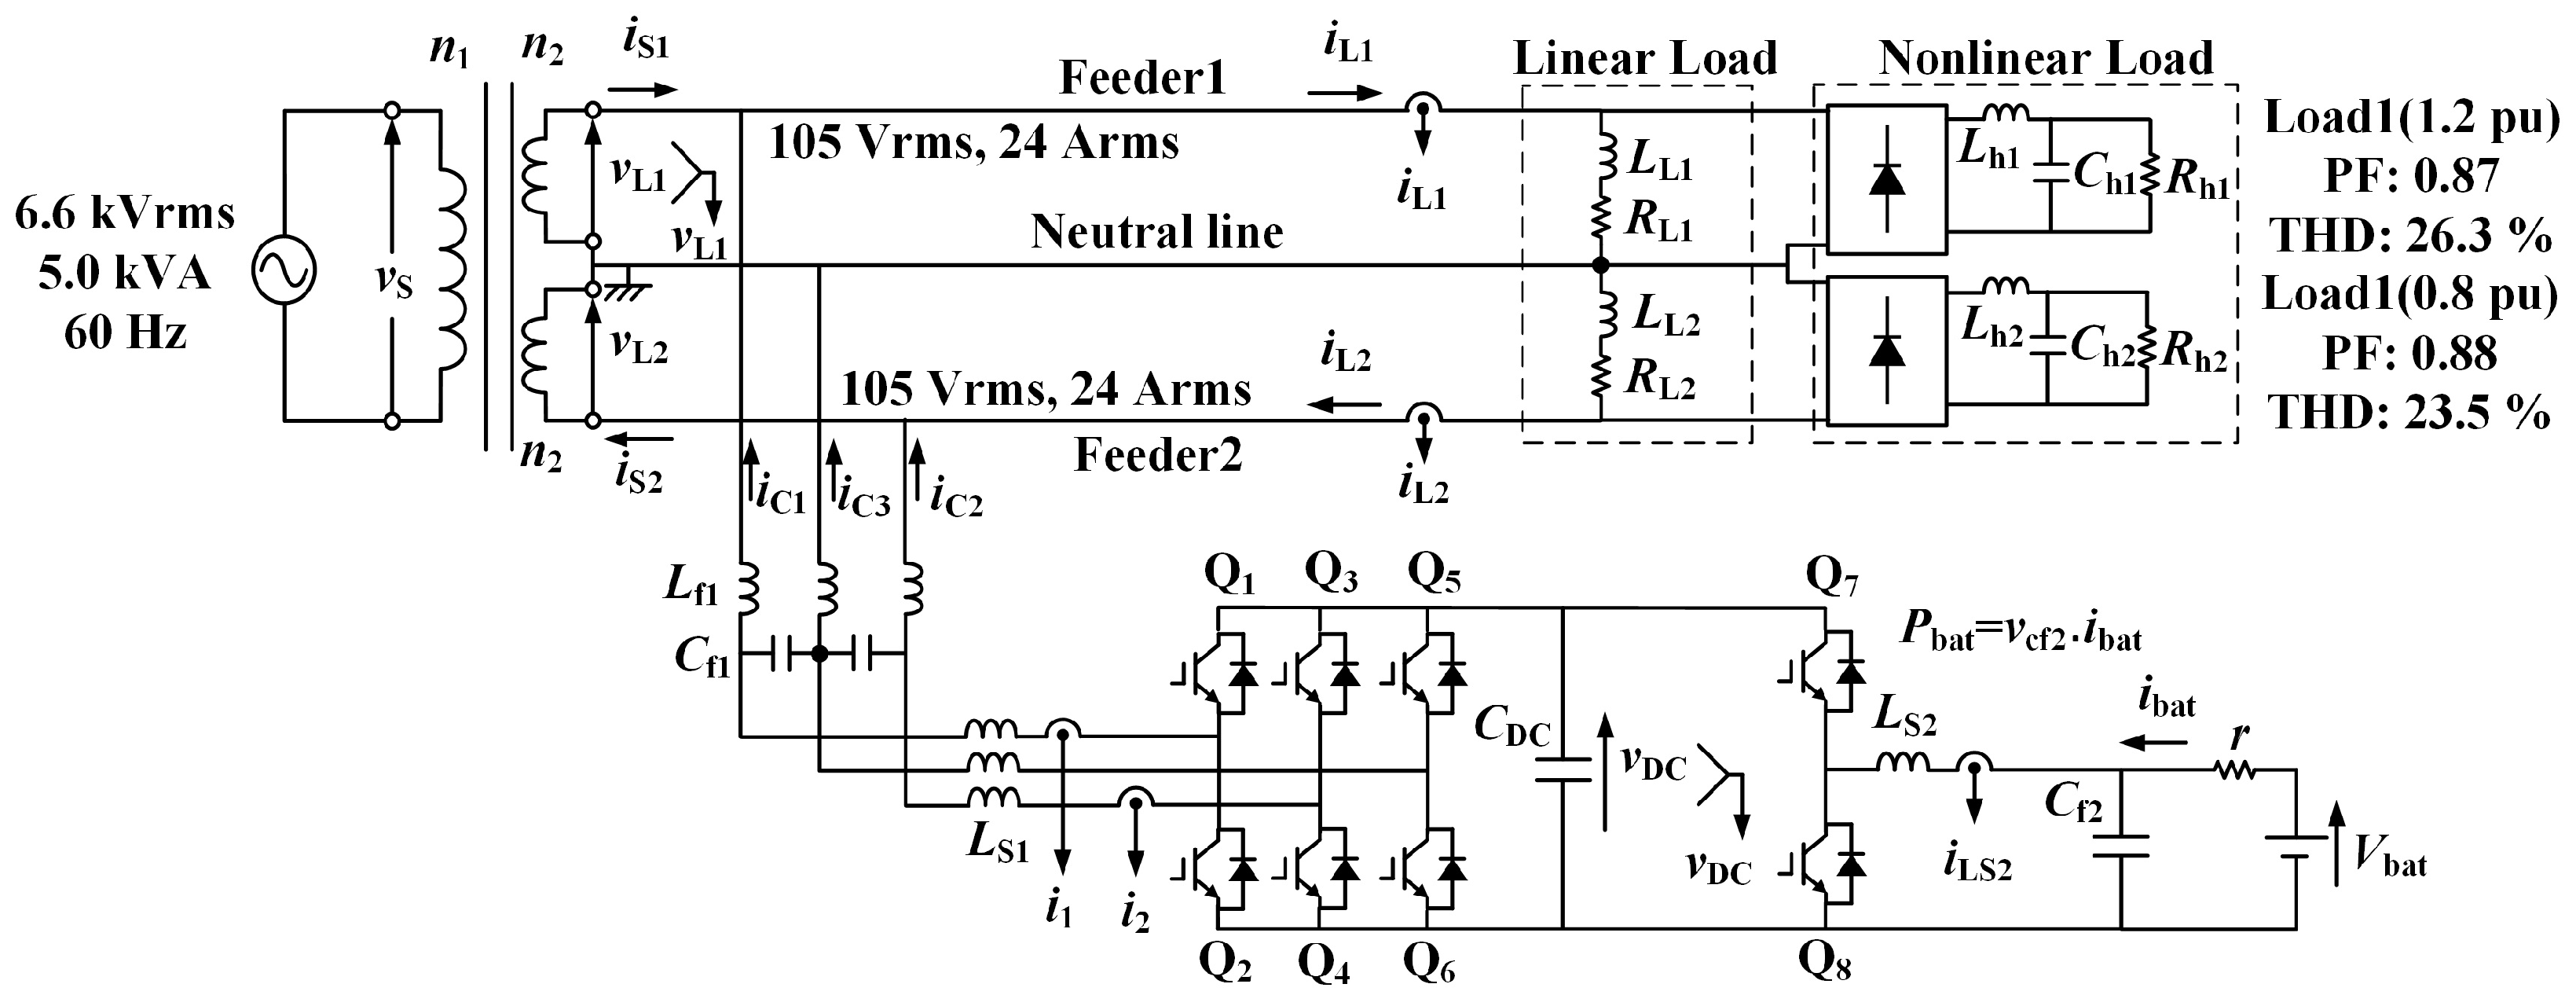 Energies Free Full Text Improvement In Harmonic Compensation Of Capacitor Charging Circuit No